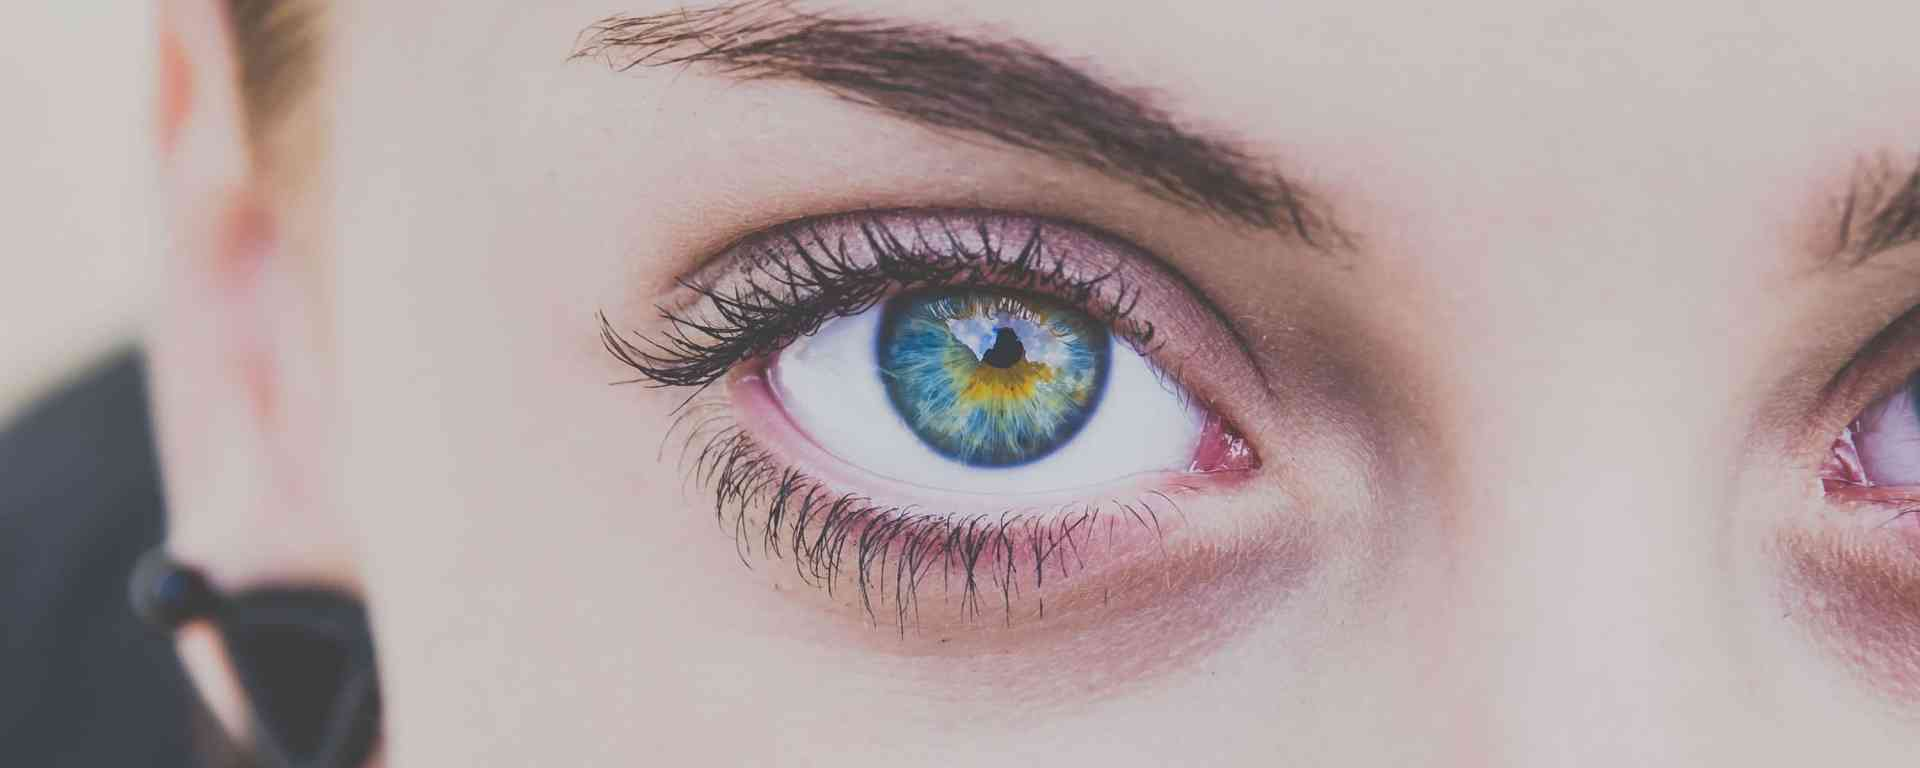 What Does True Confidence Look Like (eyes)